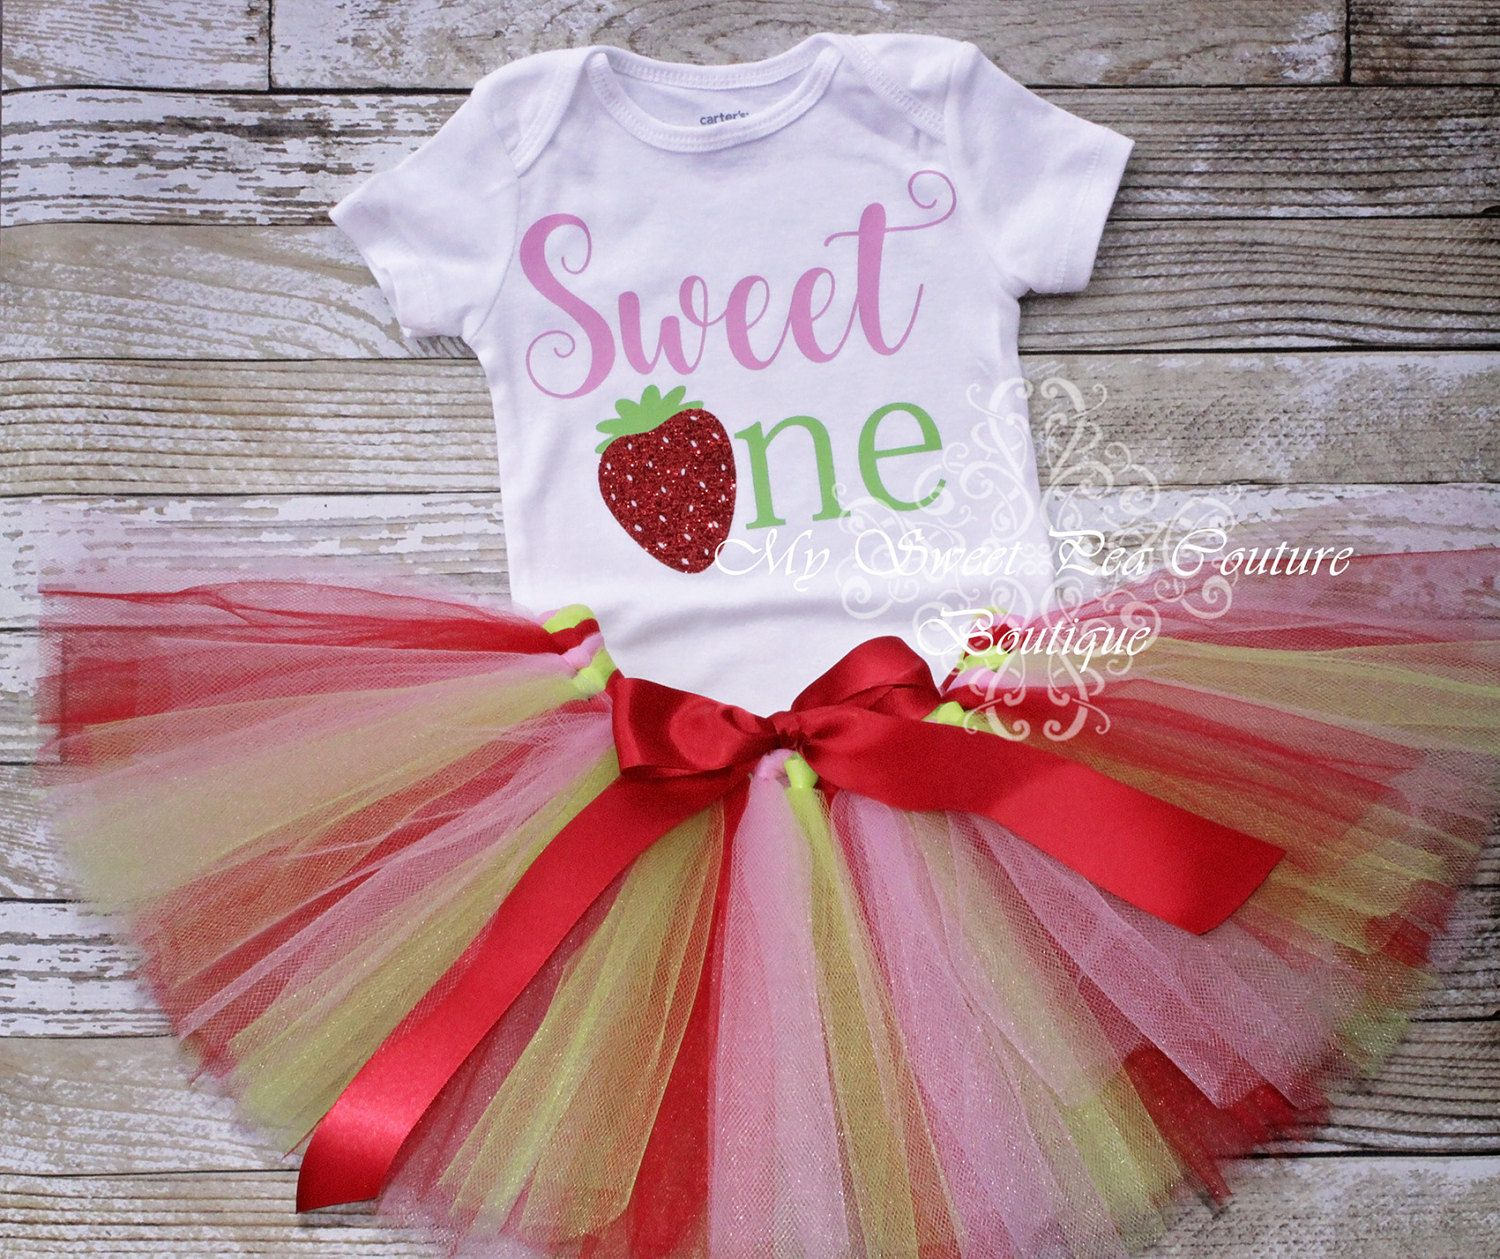 Personalised Outfit Birthday Girl New Arrived Tutu Cake Smash Outfit Birthday Girl Outfit CHOOSE COLOR!